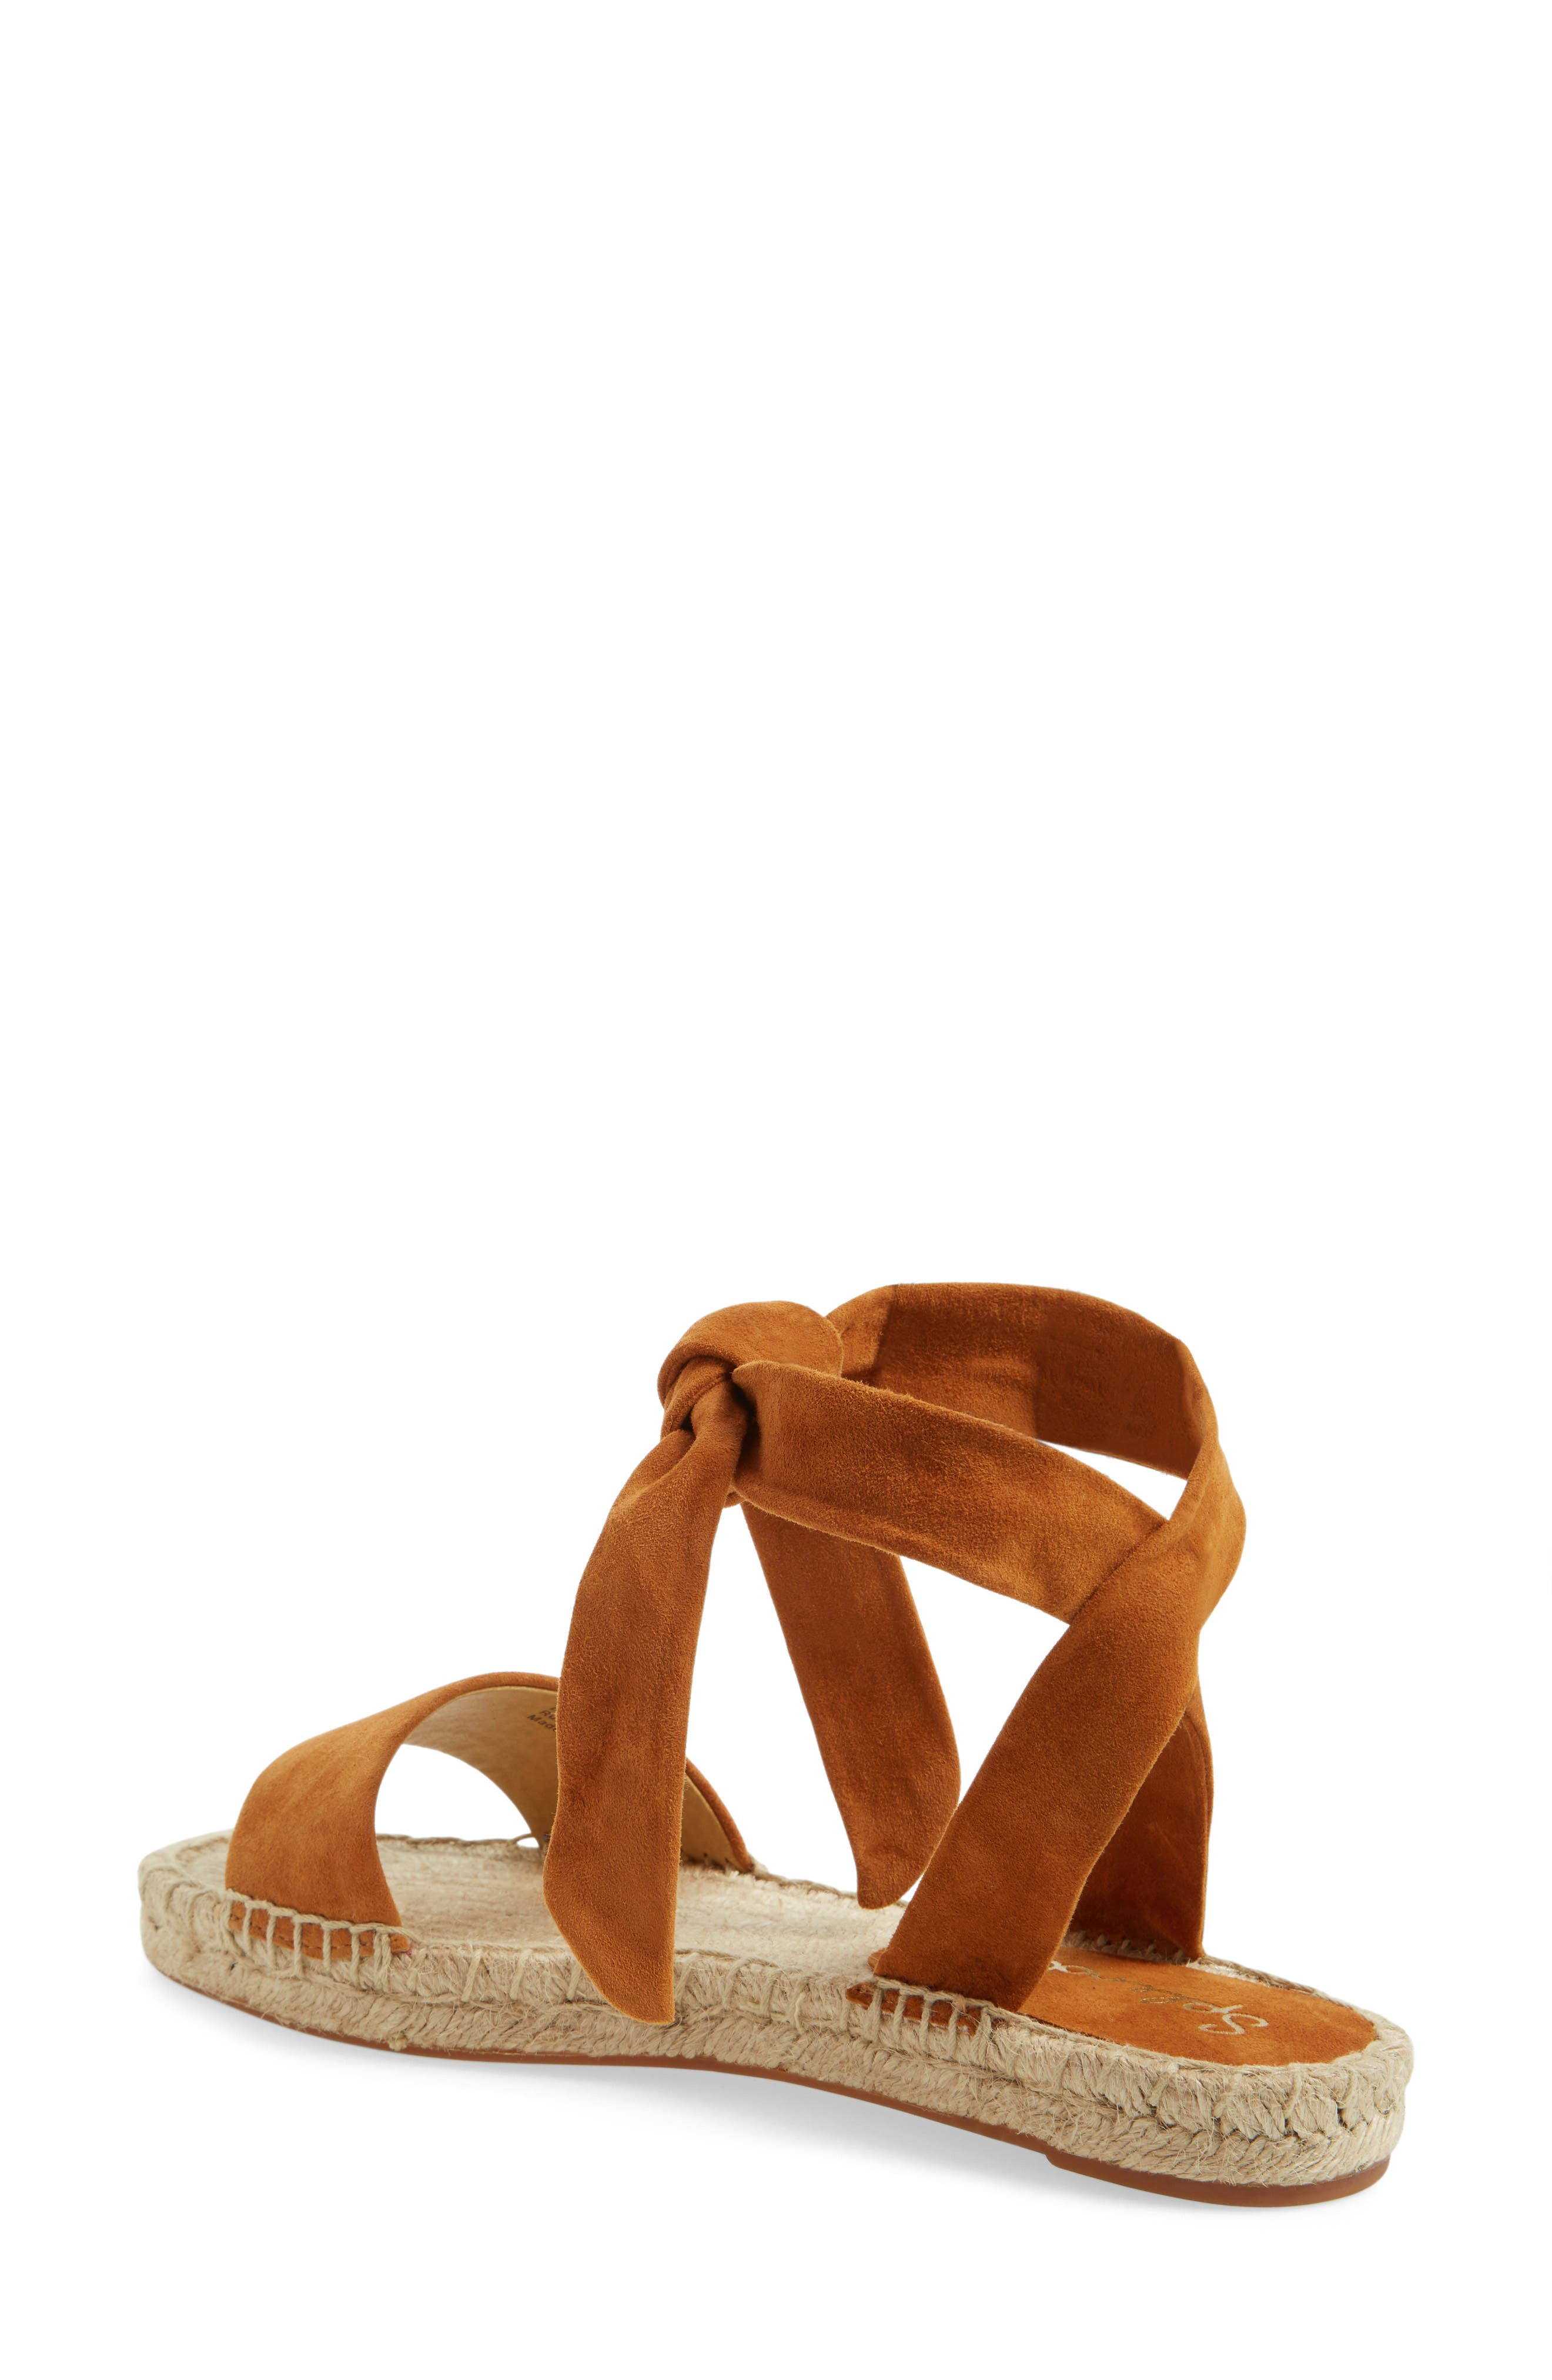 SPLENDID, Jody Ankle Tie Espadrille, Alternate thumbnail 2, color, 211